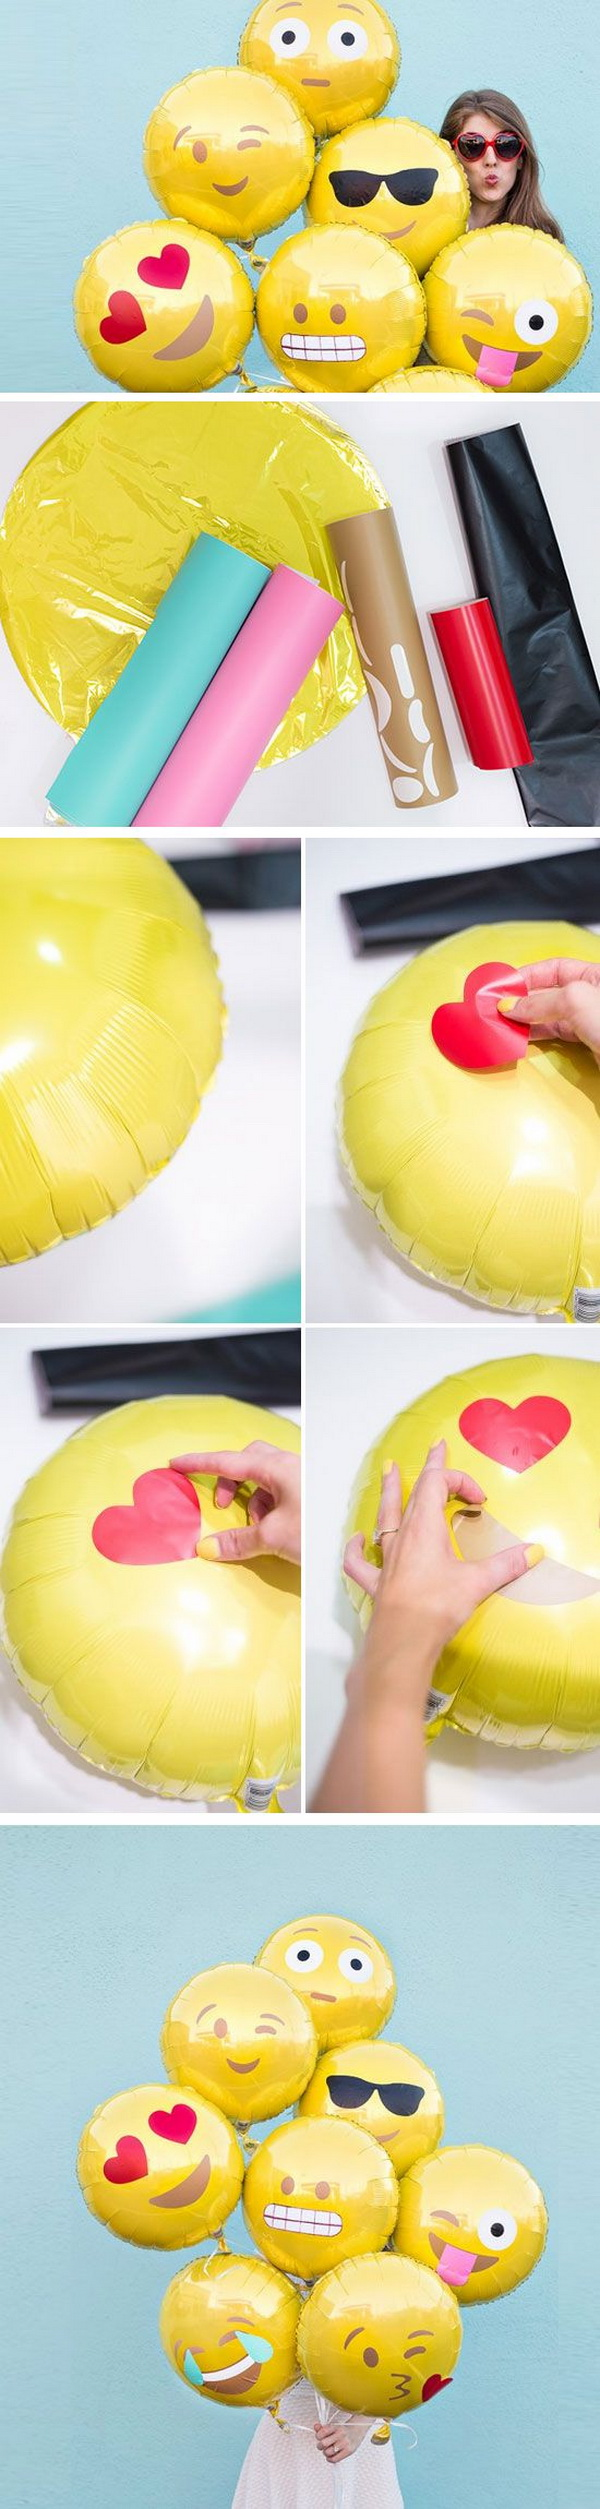 Balloon Decoration. Fabulous Balloon Decorations You Can Get Ideas ...